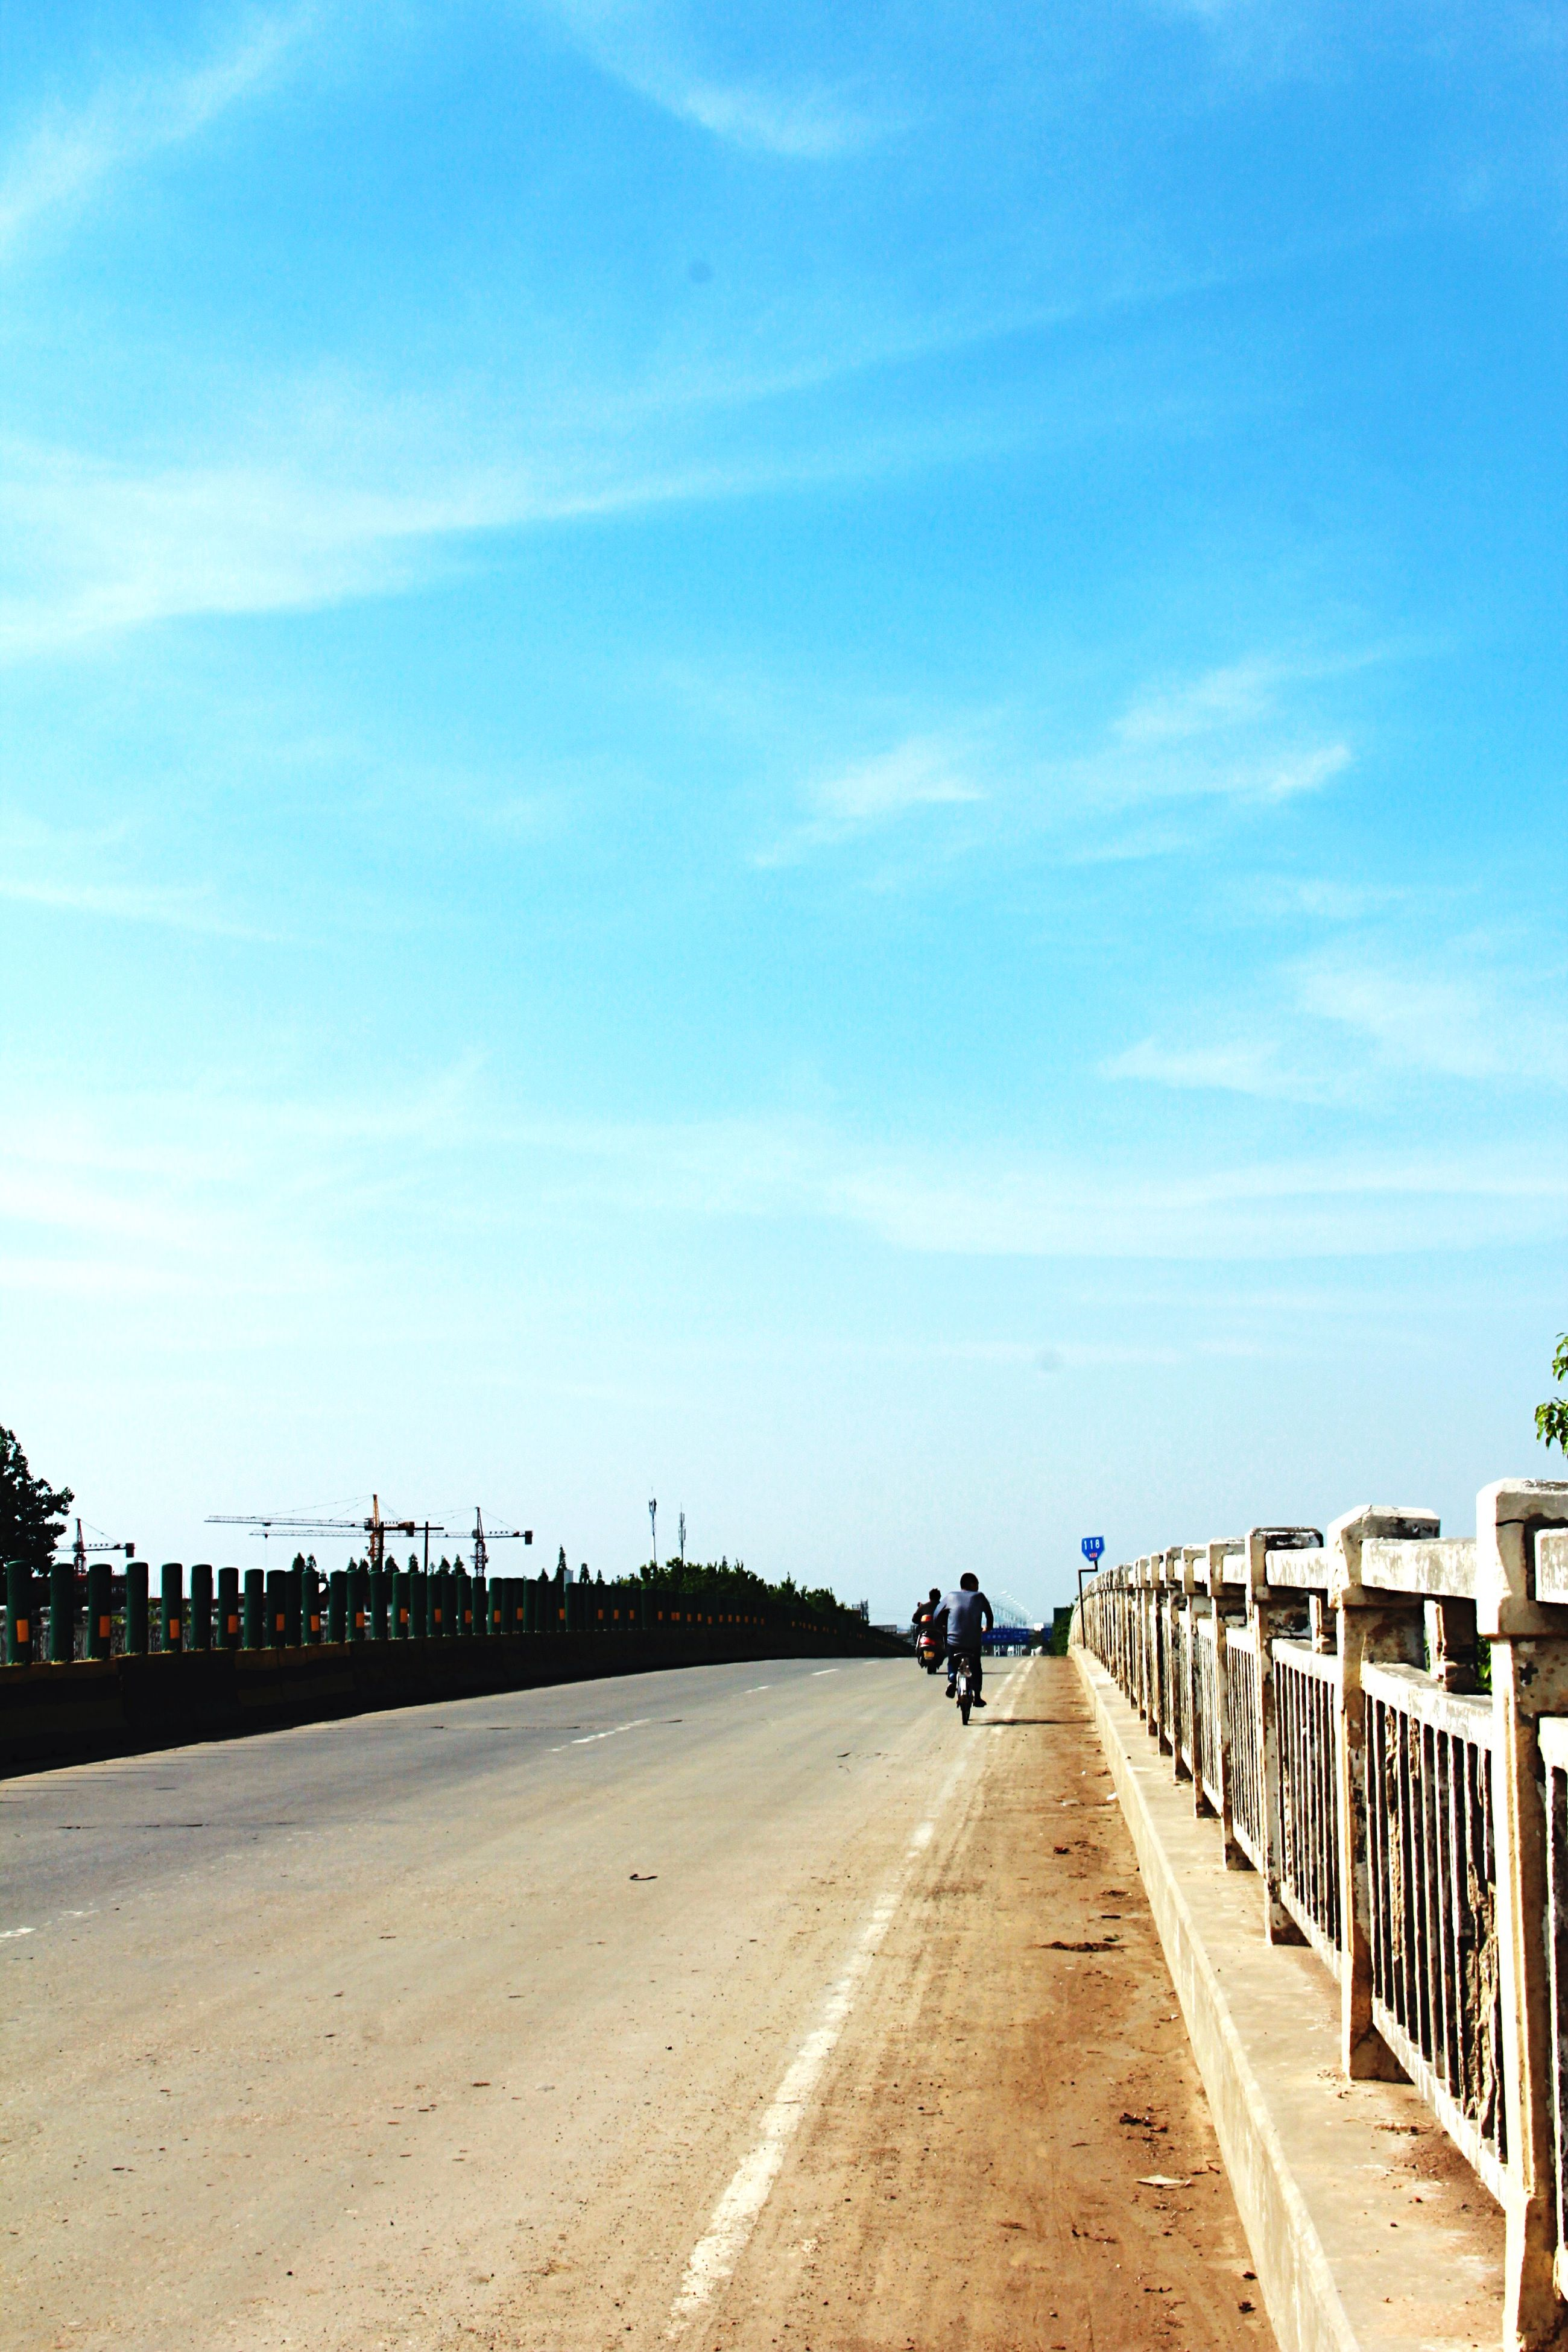 the way forward, sky, diminishing perspective, vanishing point, transportation, road, incidental people, railing, tranquility, nature, long, tranquil scene, empty, blue, walkway, footpath, built structure, cloud - sky, outdoors